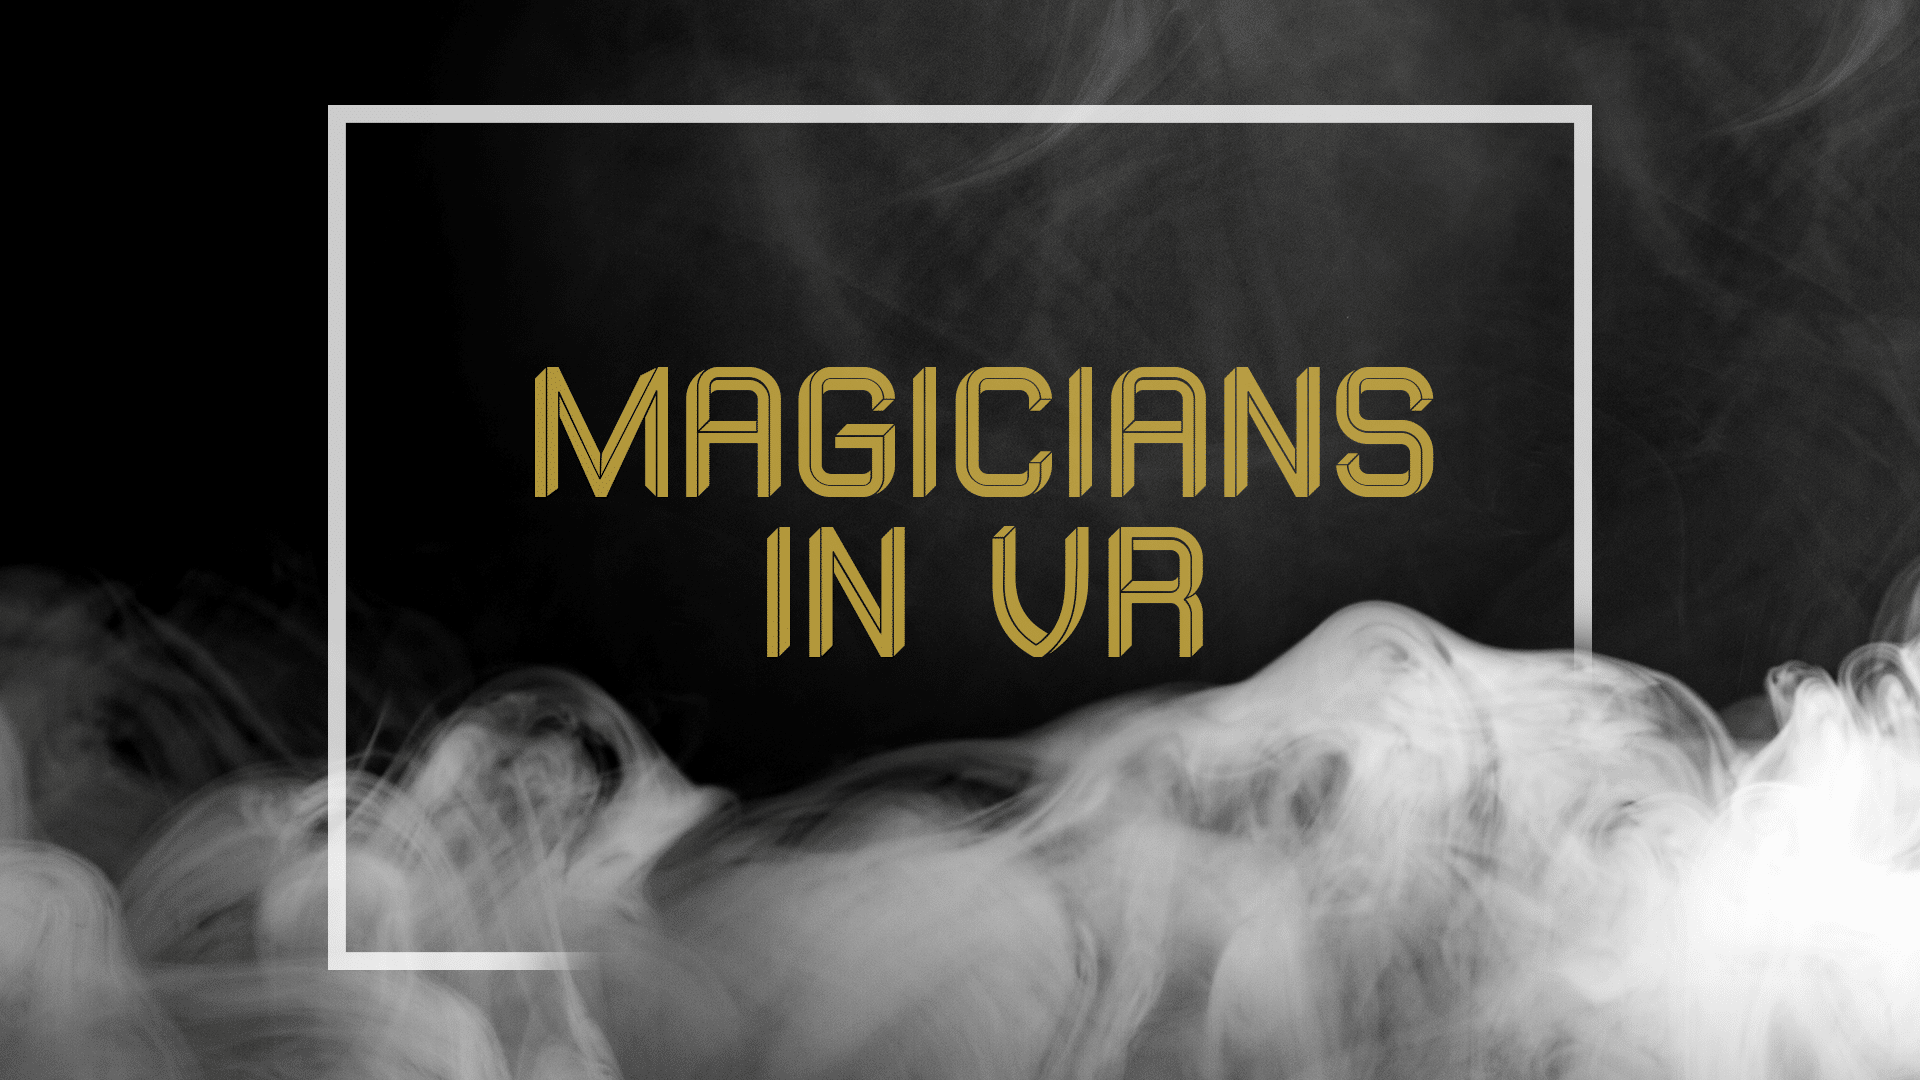 magicians in vr